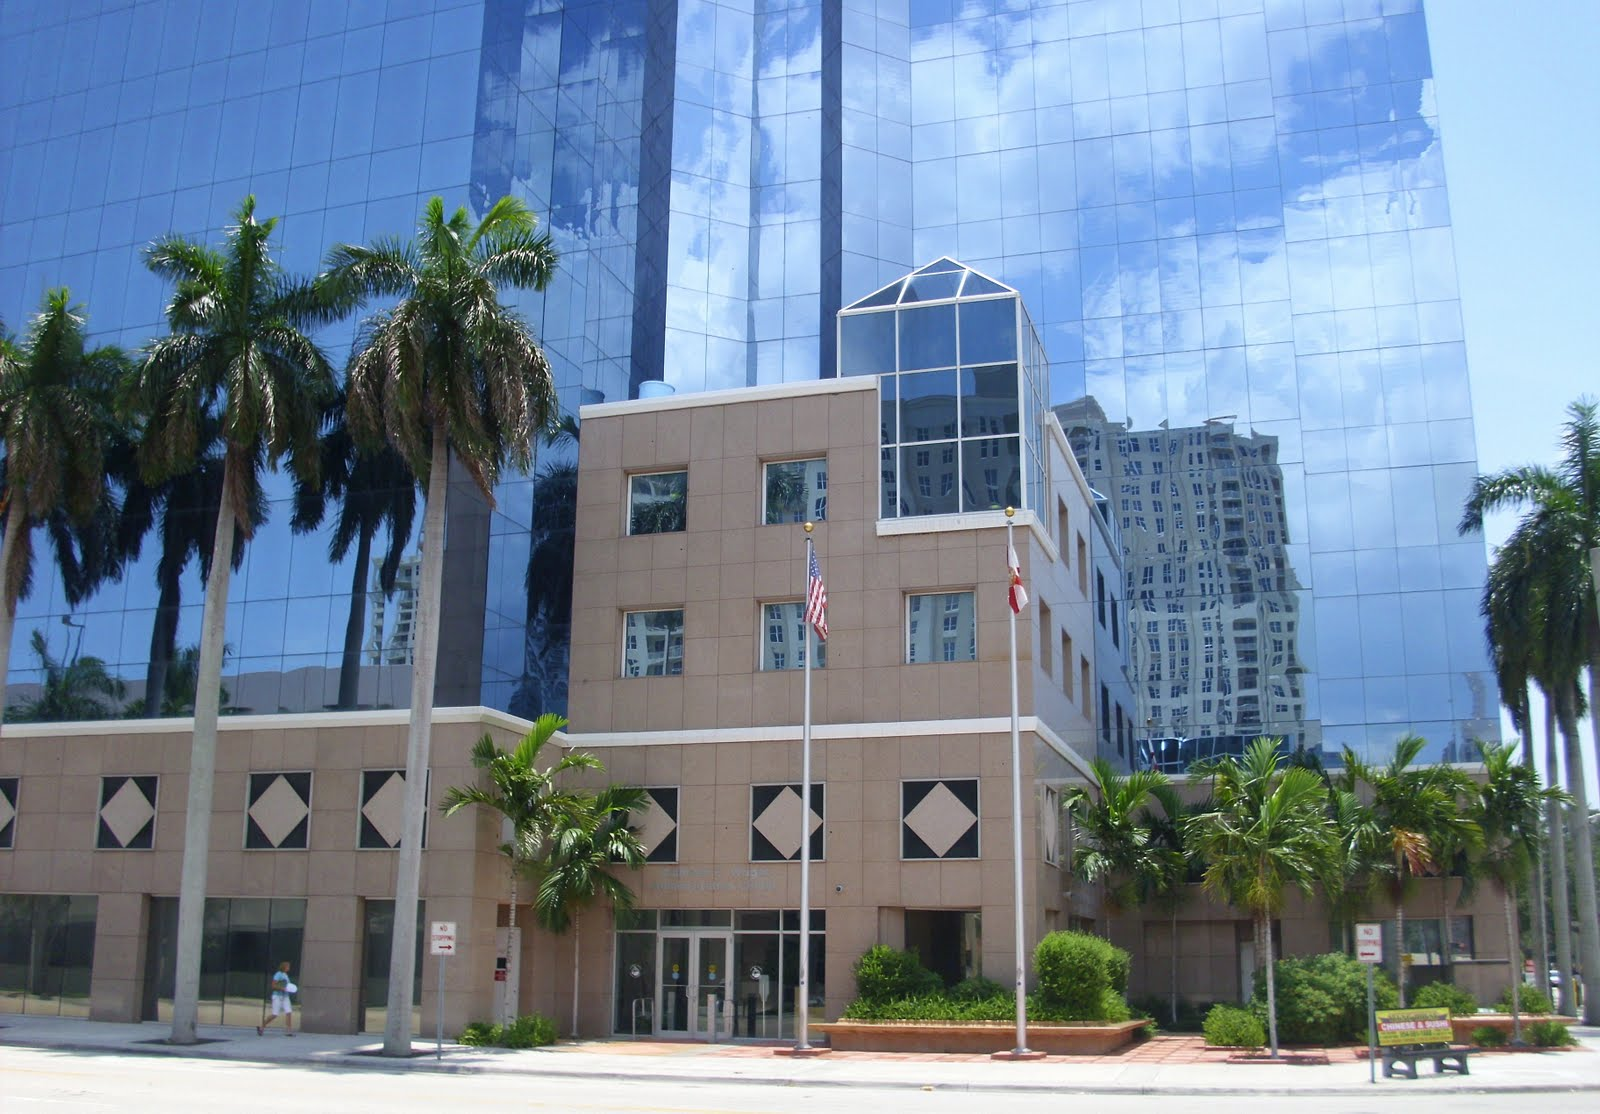 Hallandale beach blog broward county schools dysfunction junction broward county schools dysfunction junction continues to rile taxpayers parents pols in se broward county who want honest answers fandeluxe Image collections